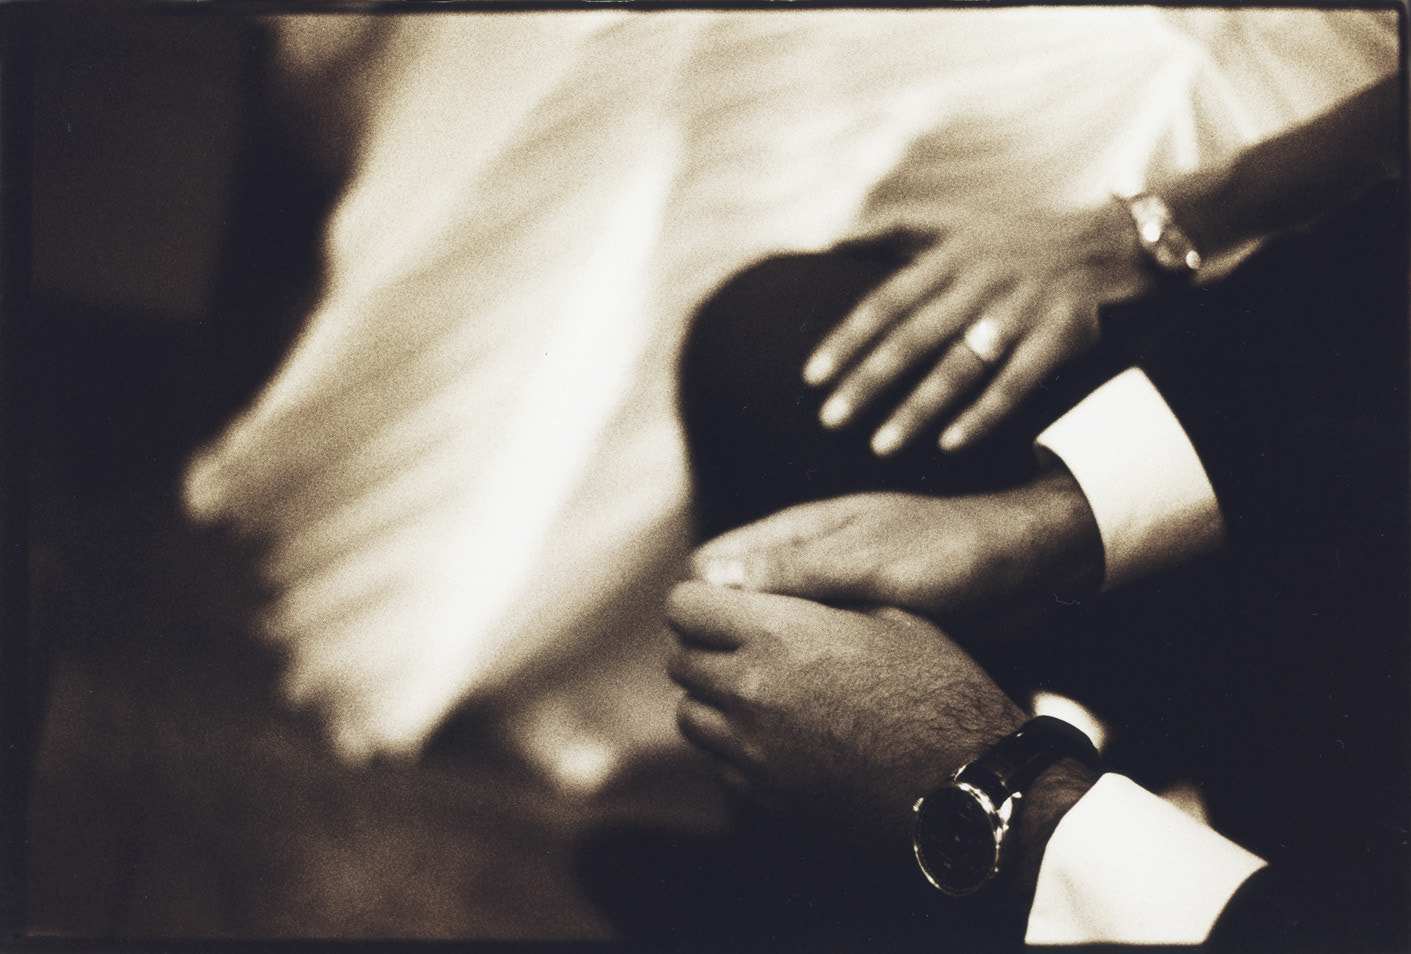 Photograph Hands - bridal photography Edward Olive by Edward Olive on 500px